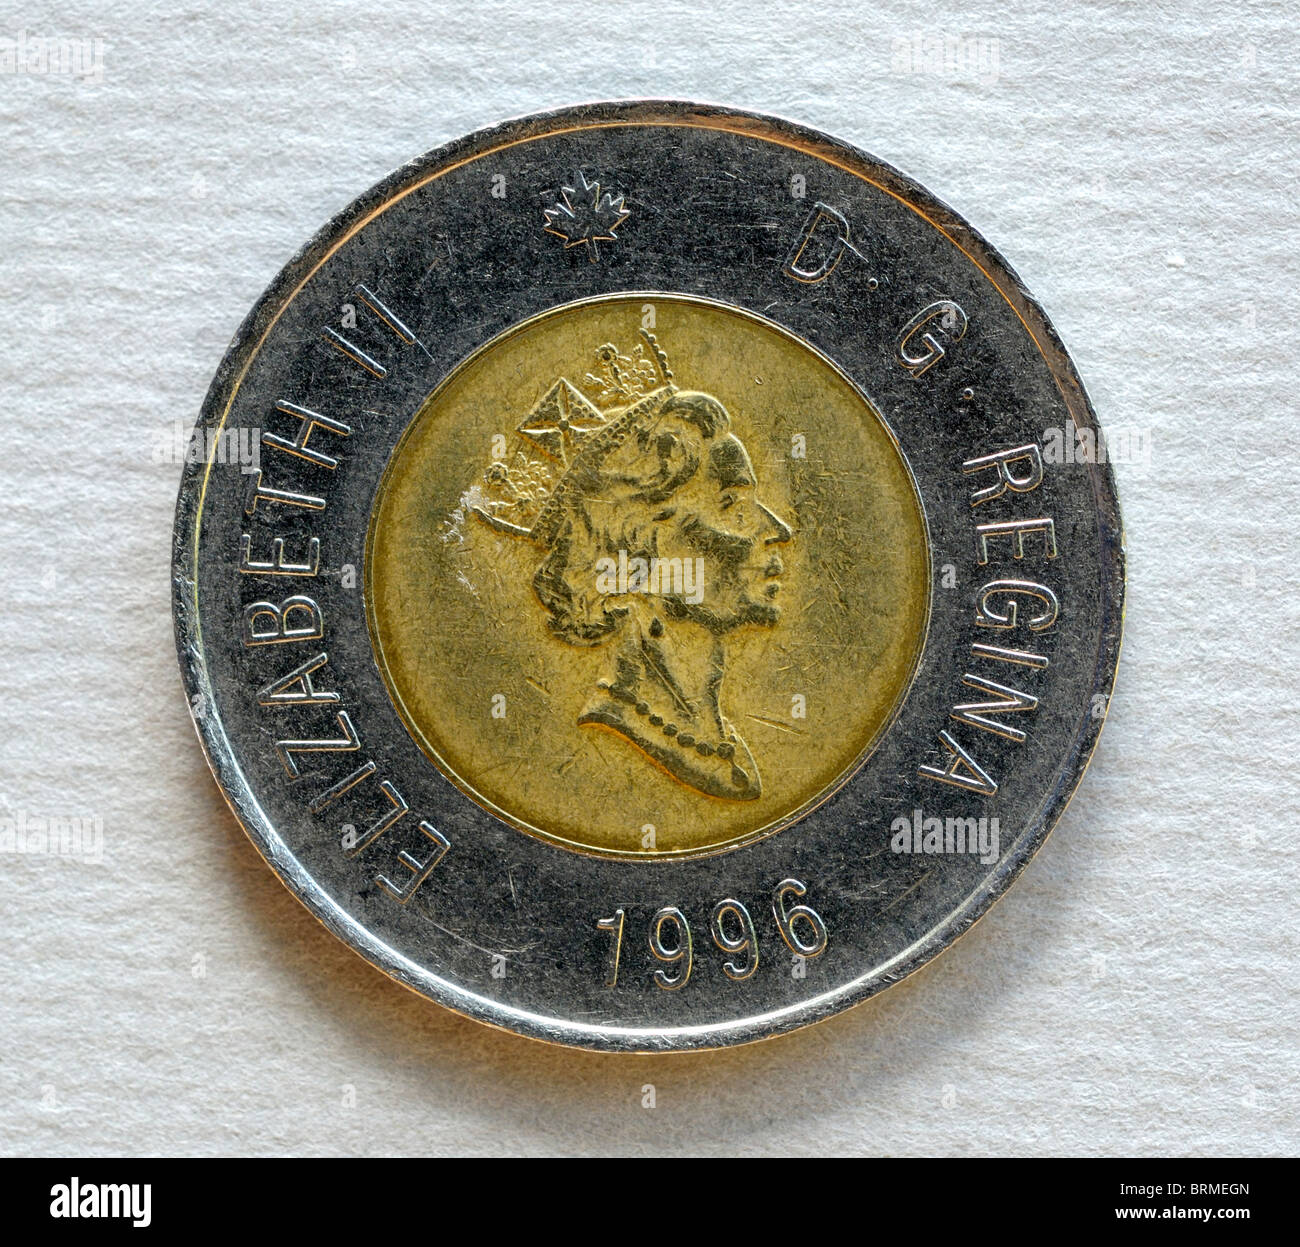 Canada Two 2 Dollar Coin. - Stock Image